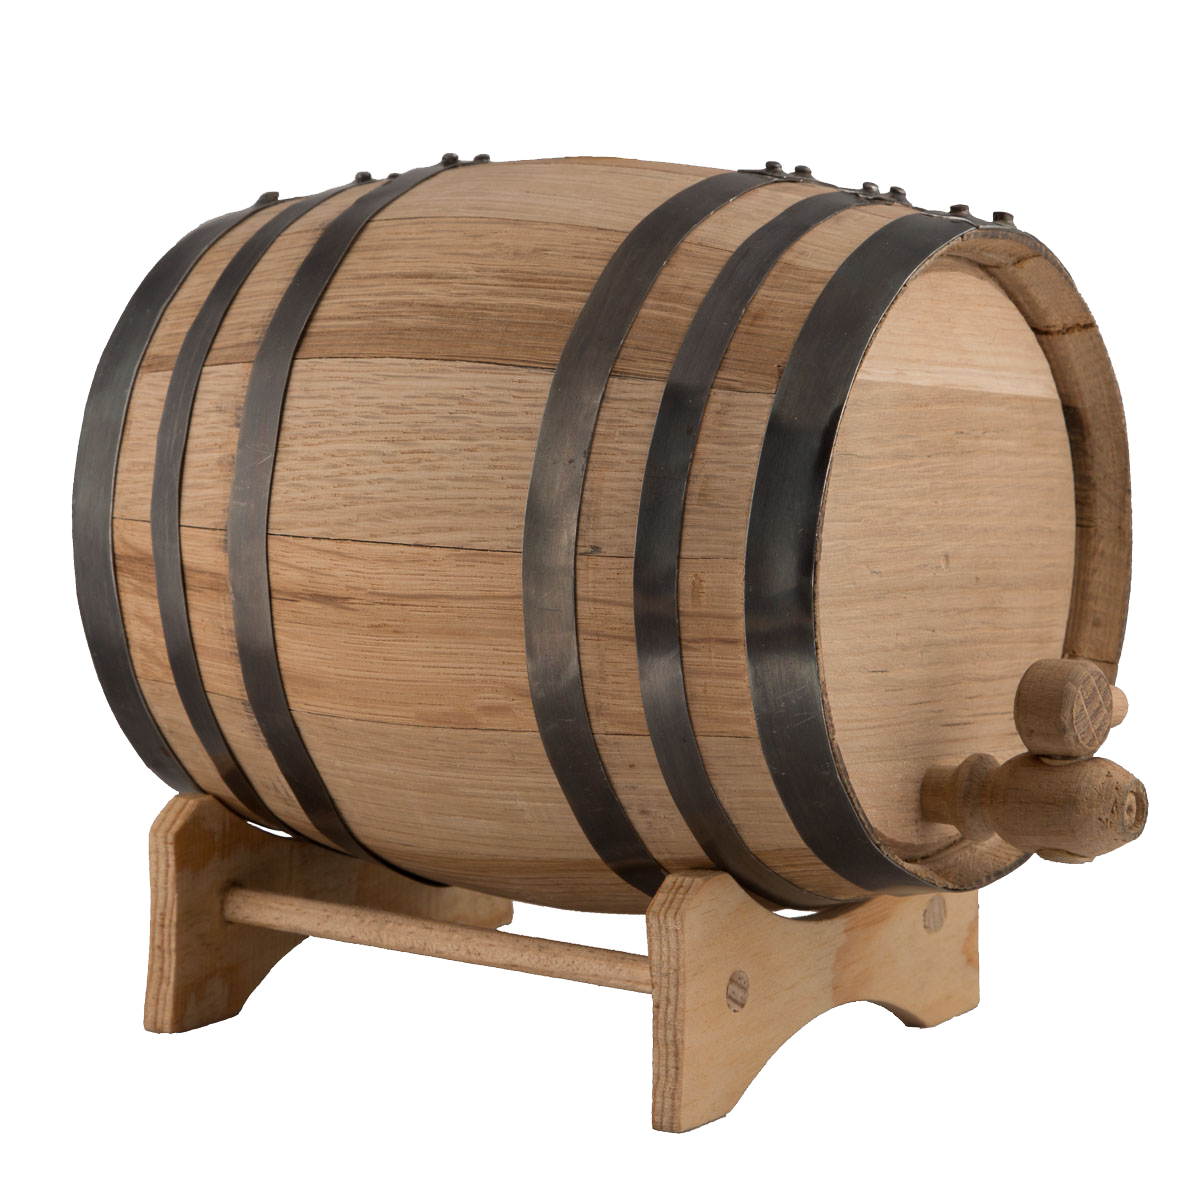 """What the #&% is """"the barrel theory""""?"""